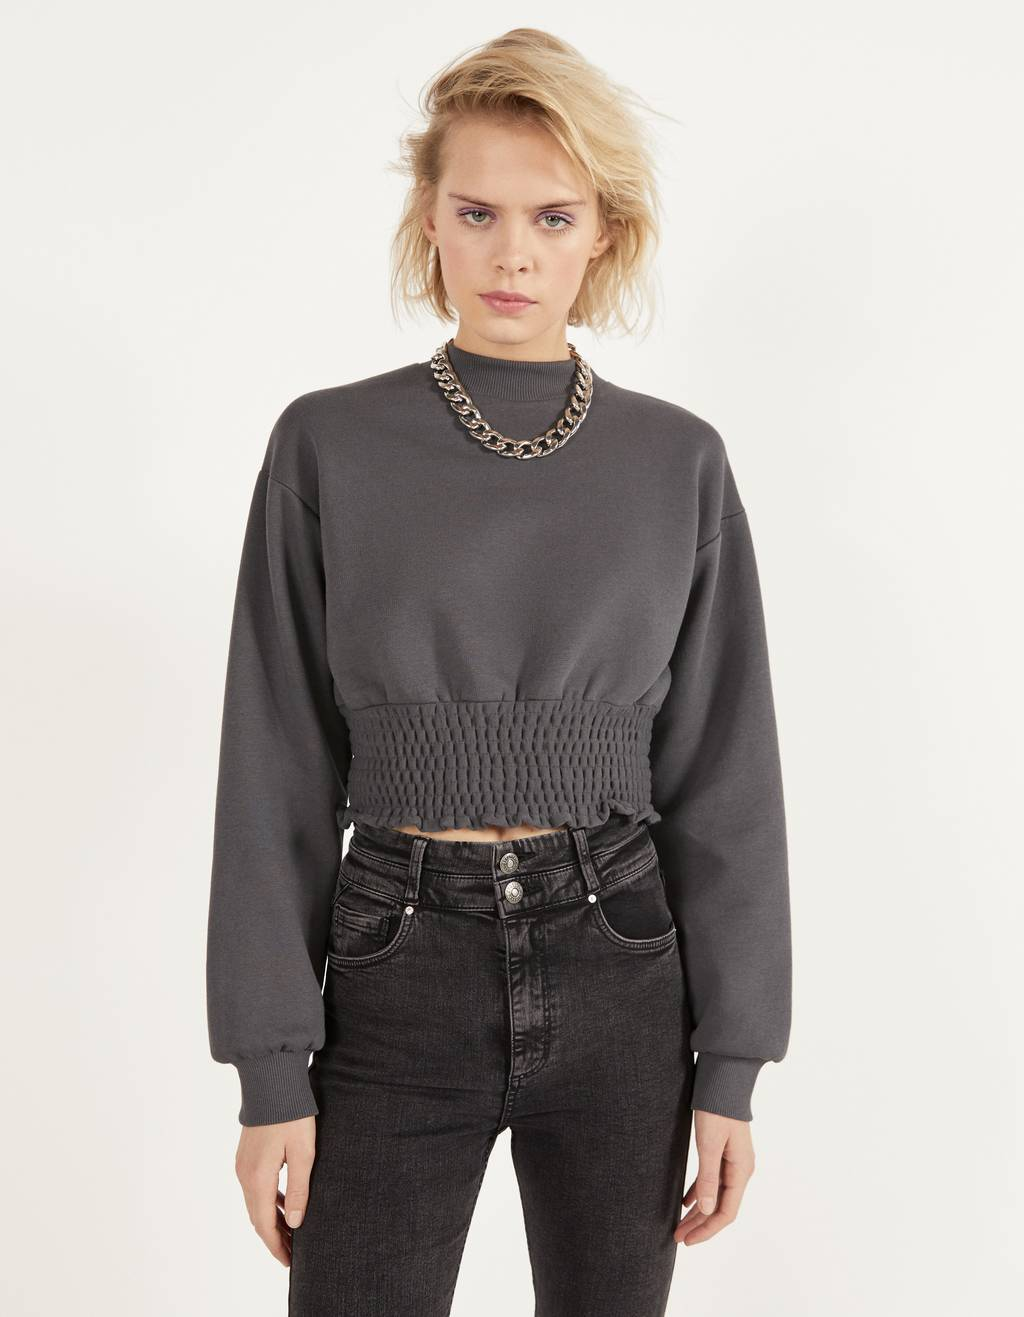 Sweatshirt with shirred elastic